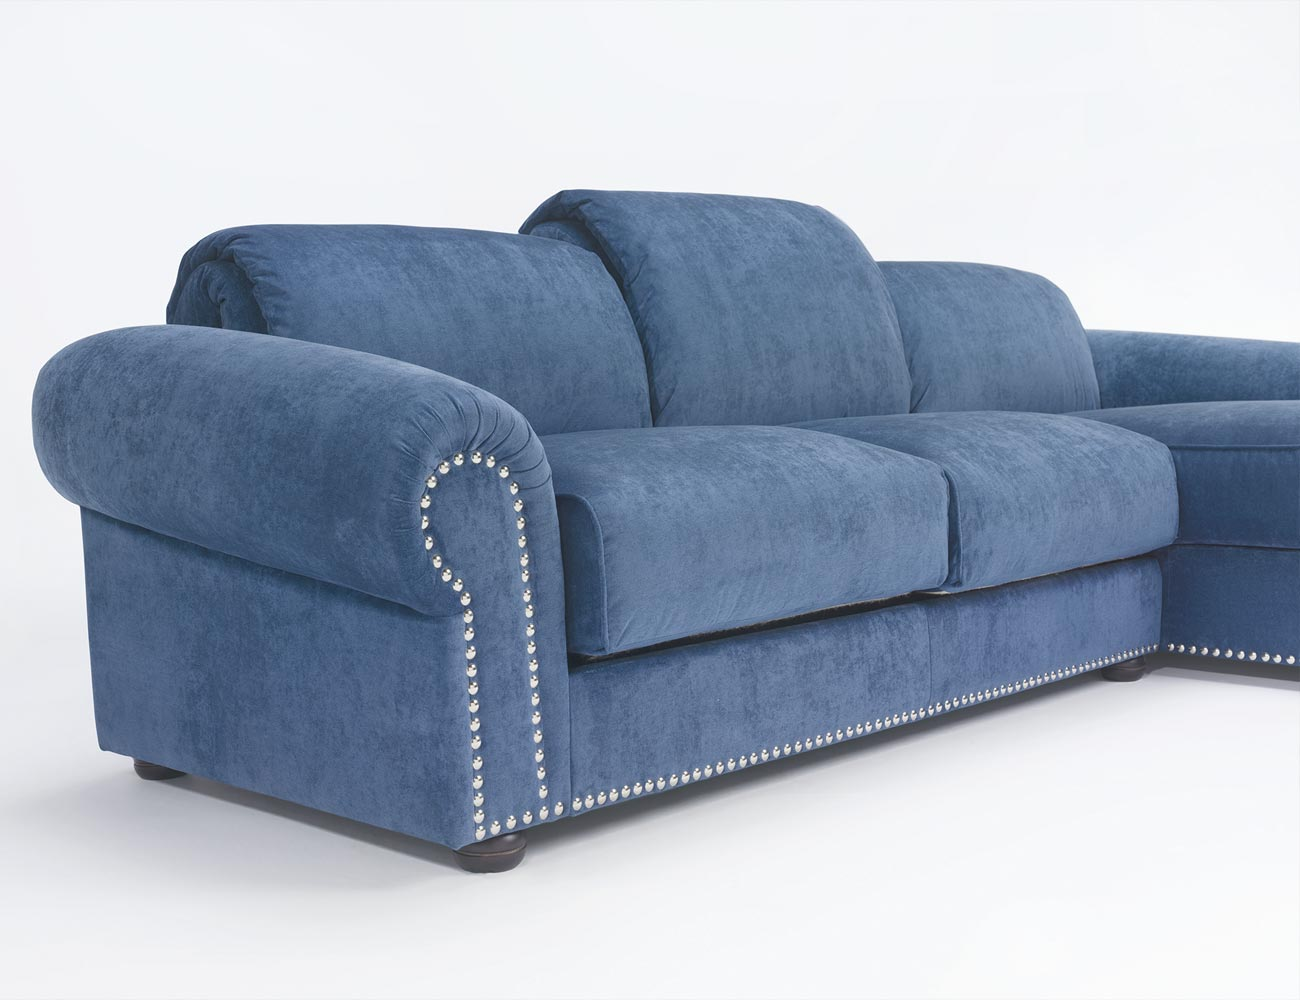 Sofa chaiselongue gran lujo decorativo azul 144